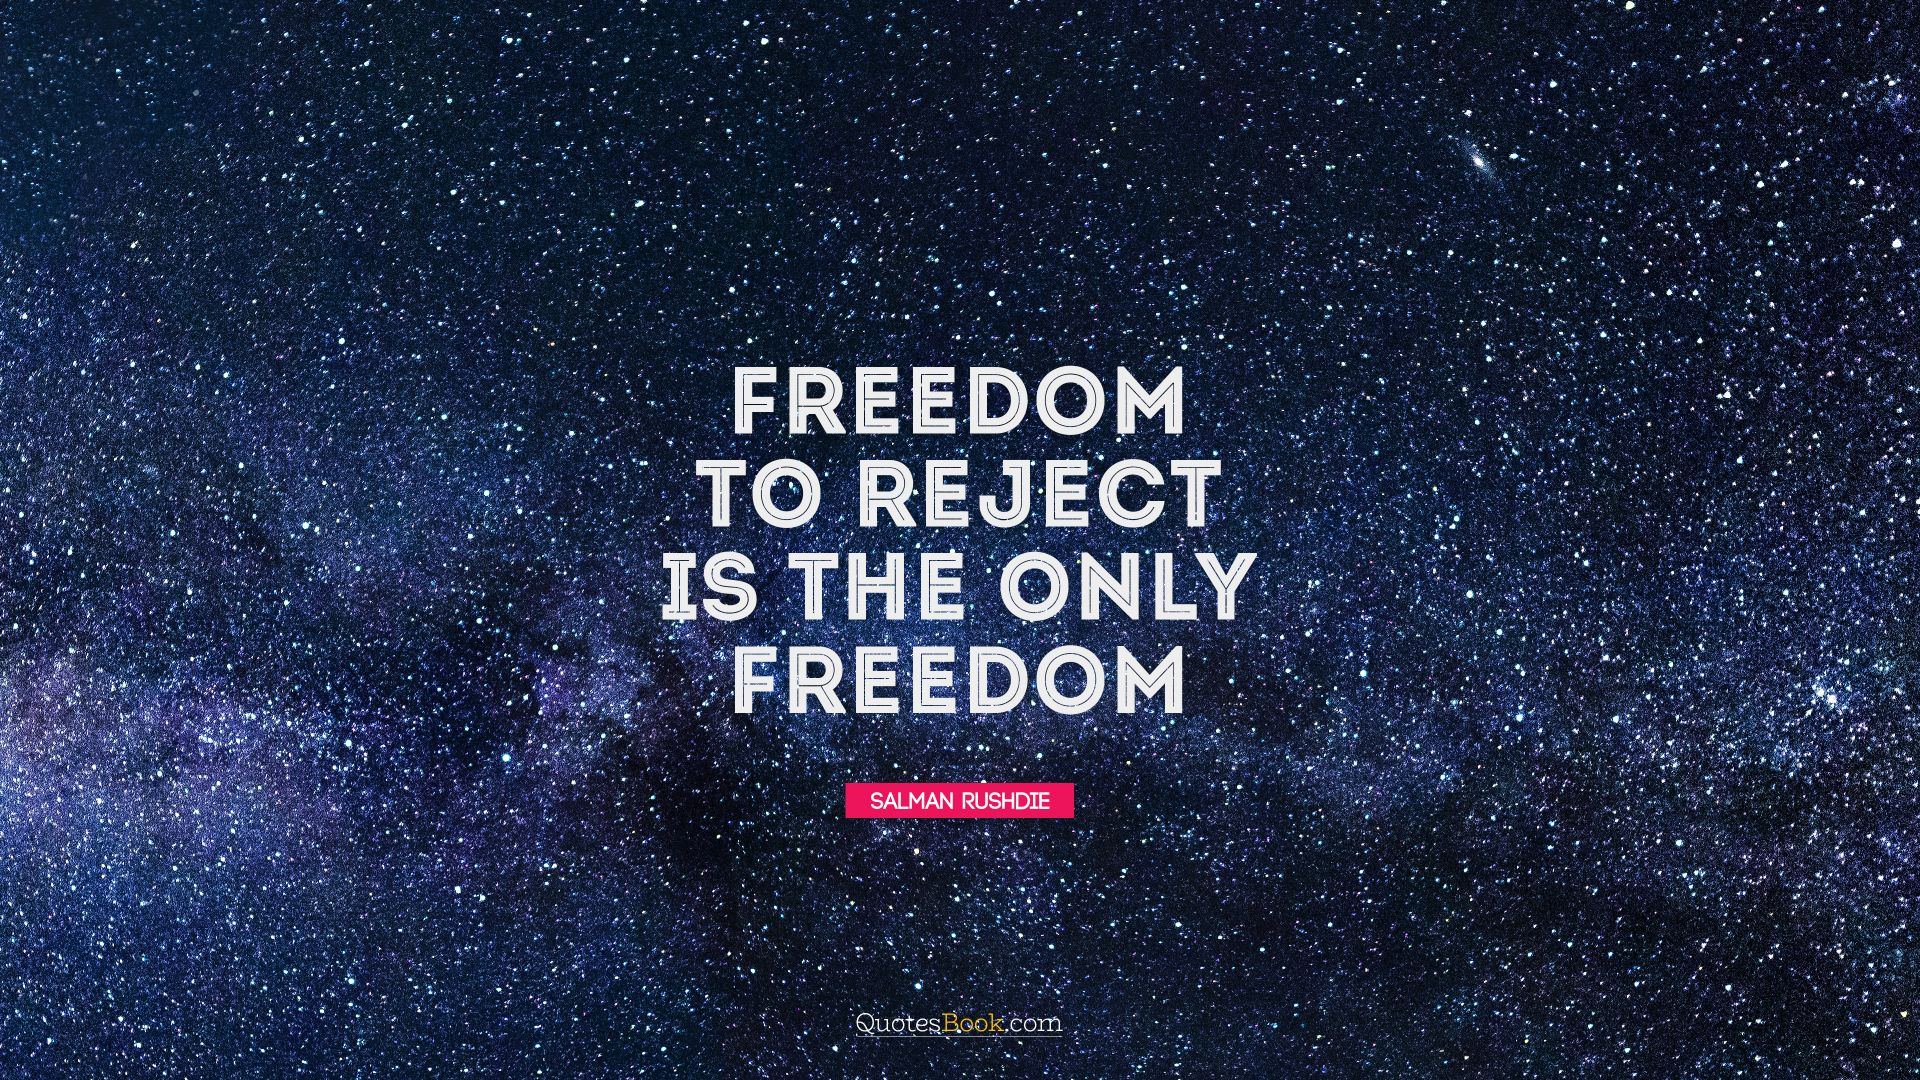 Freedom to reject is the only freedom. - Quote by Salman Rushdie